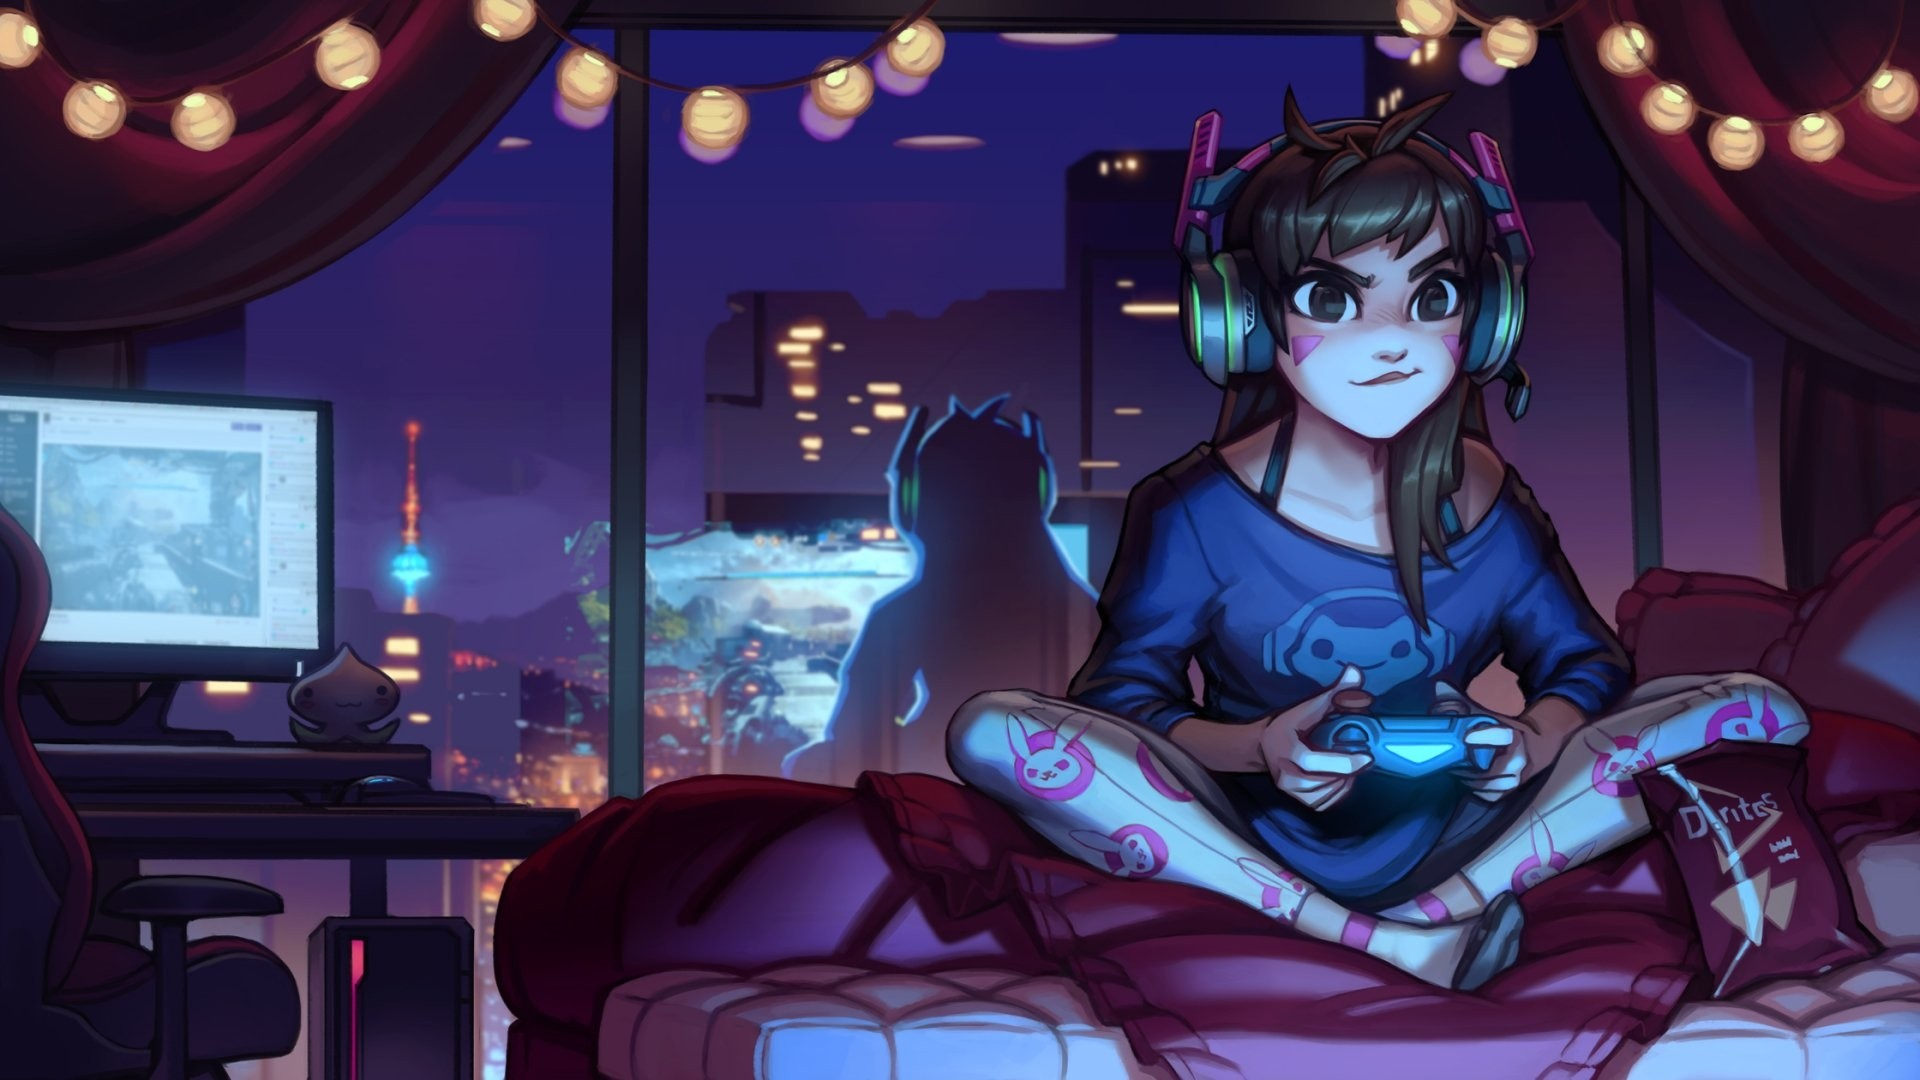 Gamer Girl free download wallpaper